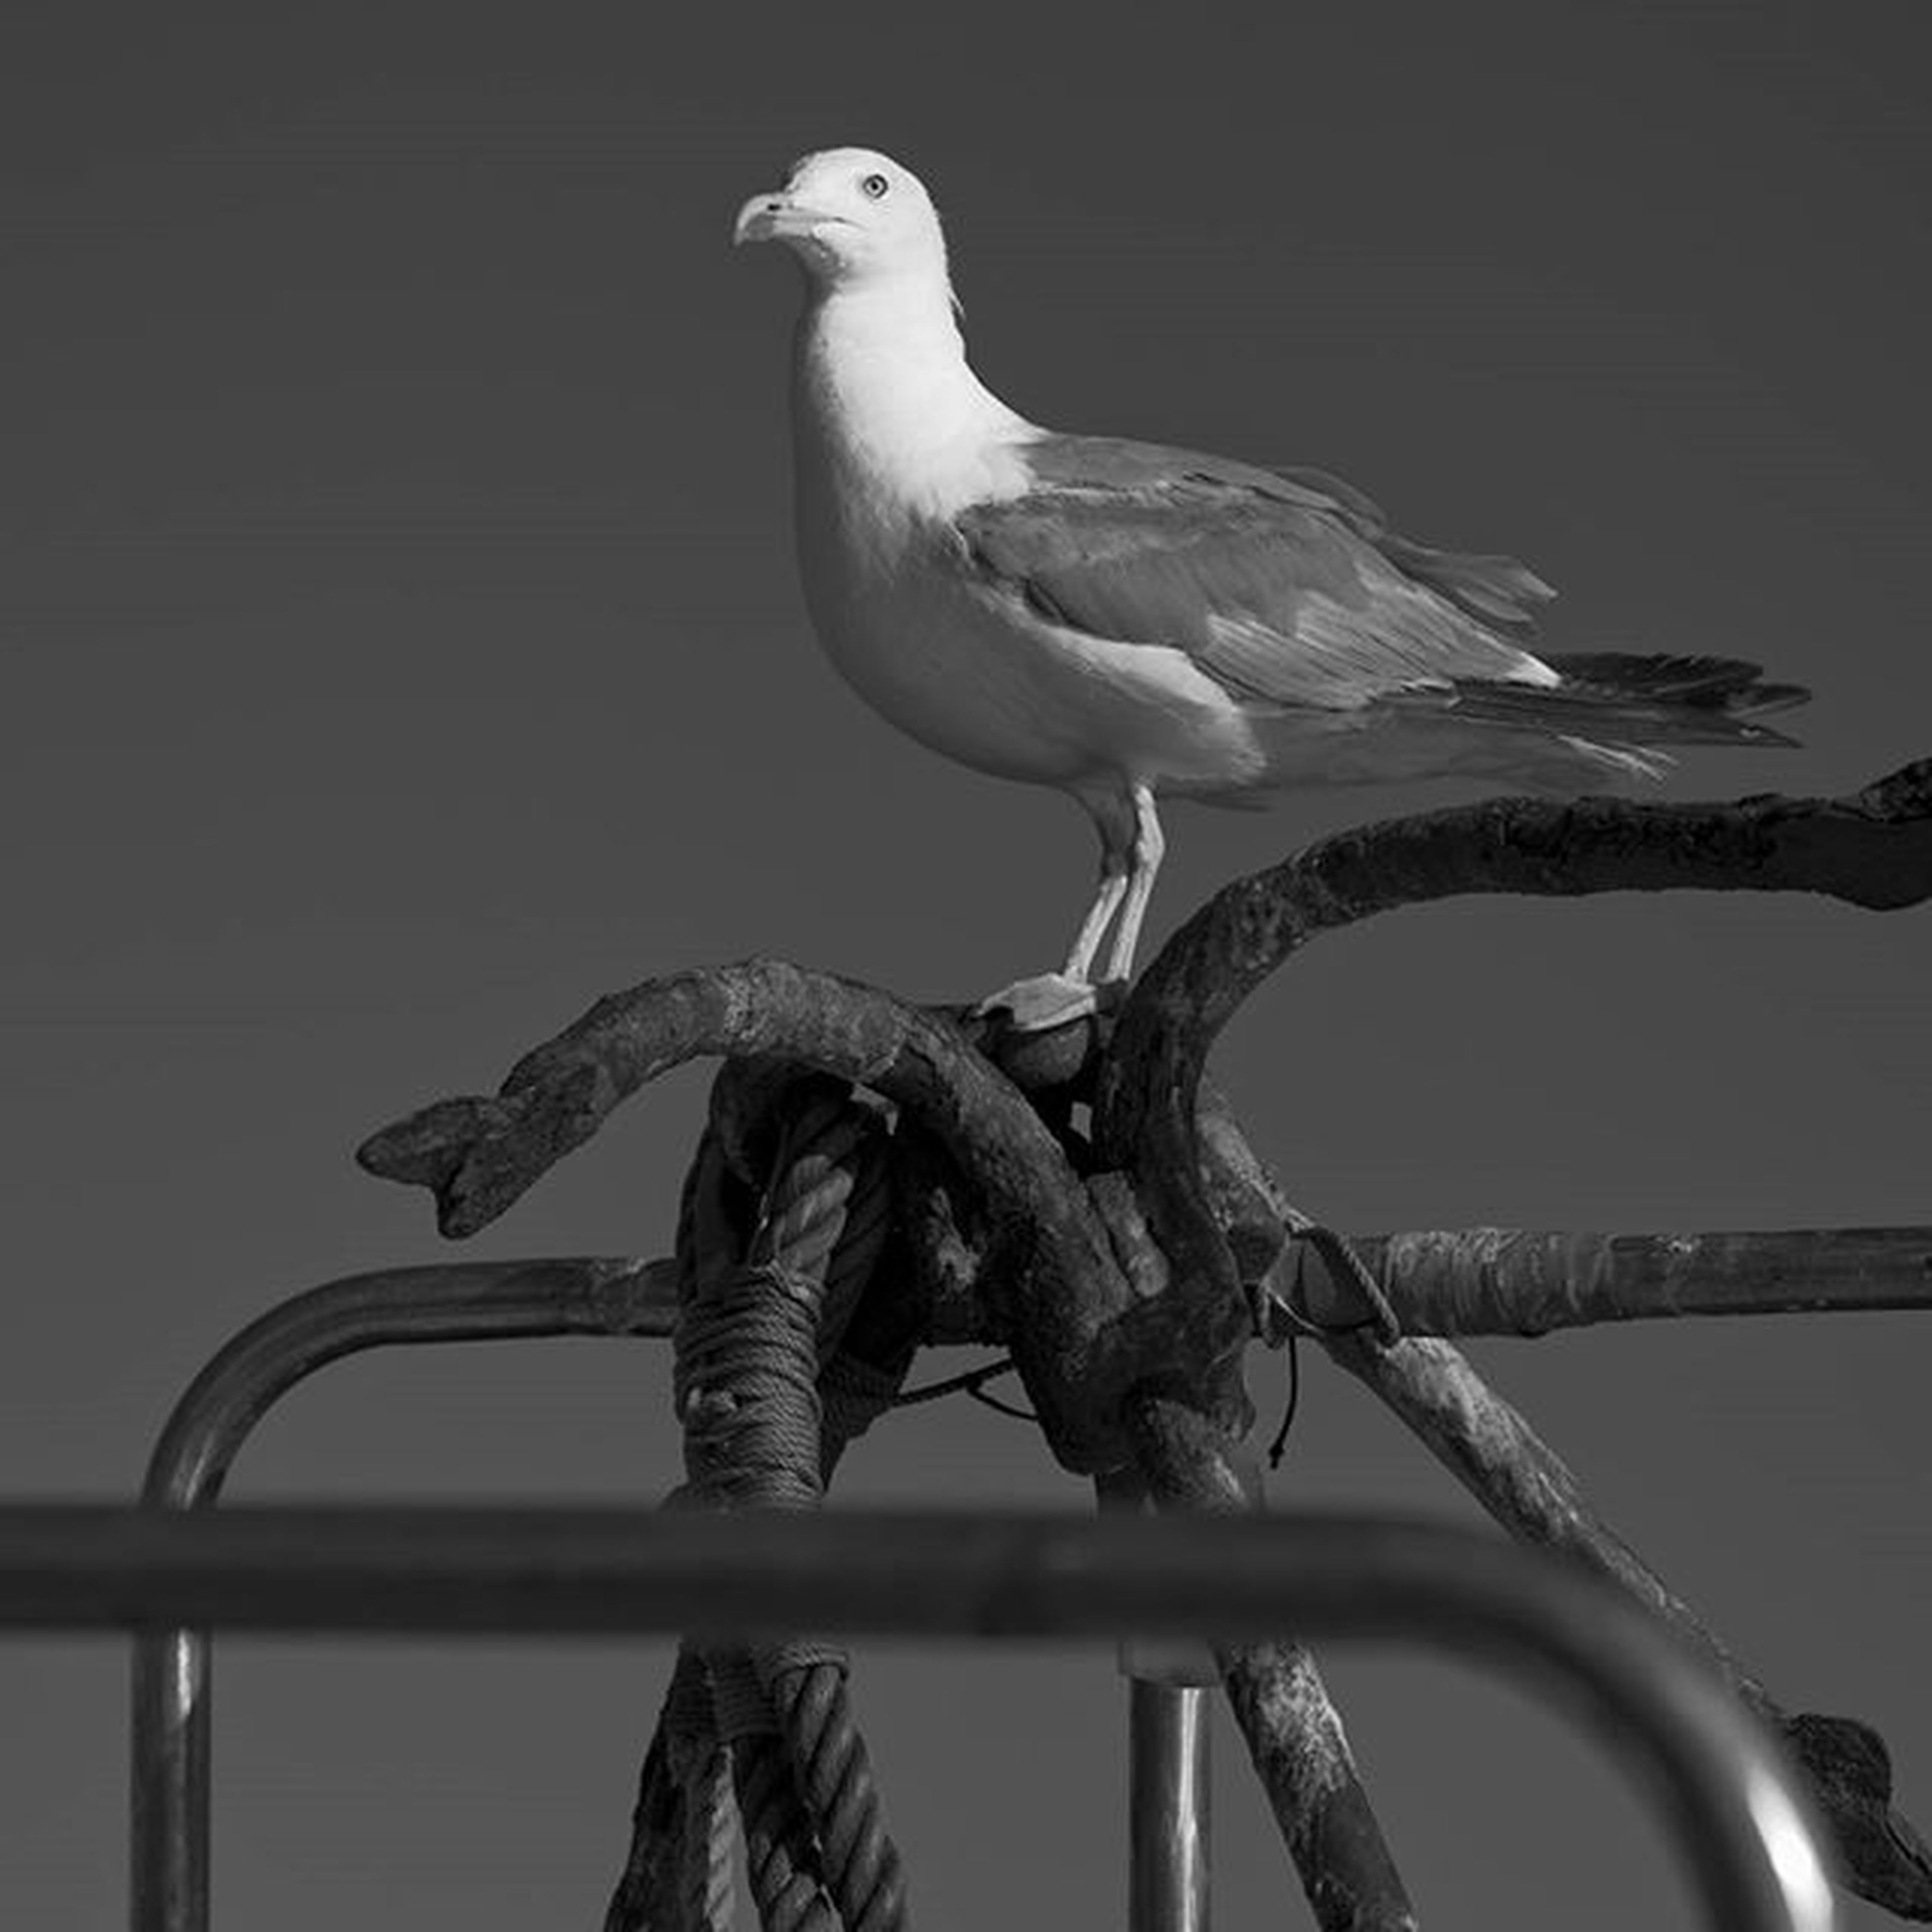 bird, animal themes, animals in the wild, wildlife, one animal, perching, beak, side view, seagull, full length, nature, zoology, low angle view, outdoors, focus on foreground, two animals, no people, avian, close-up, day